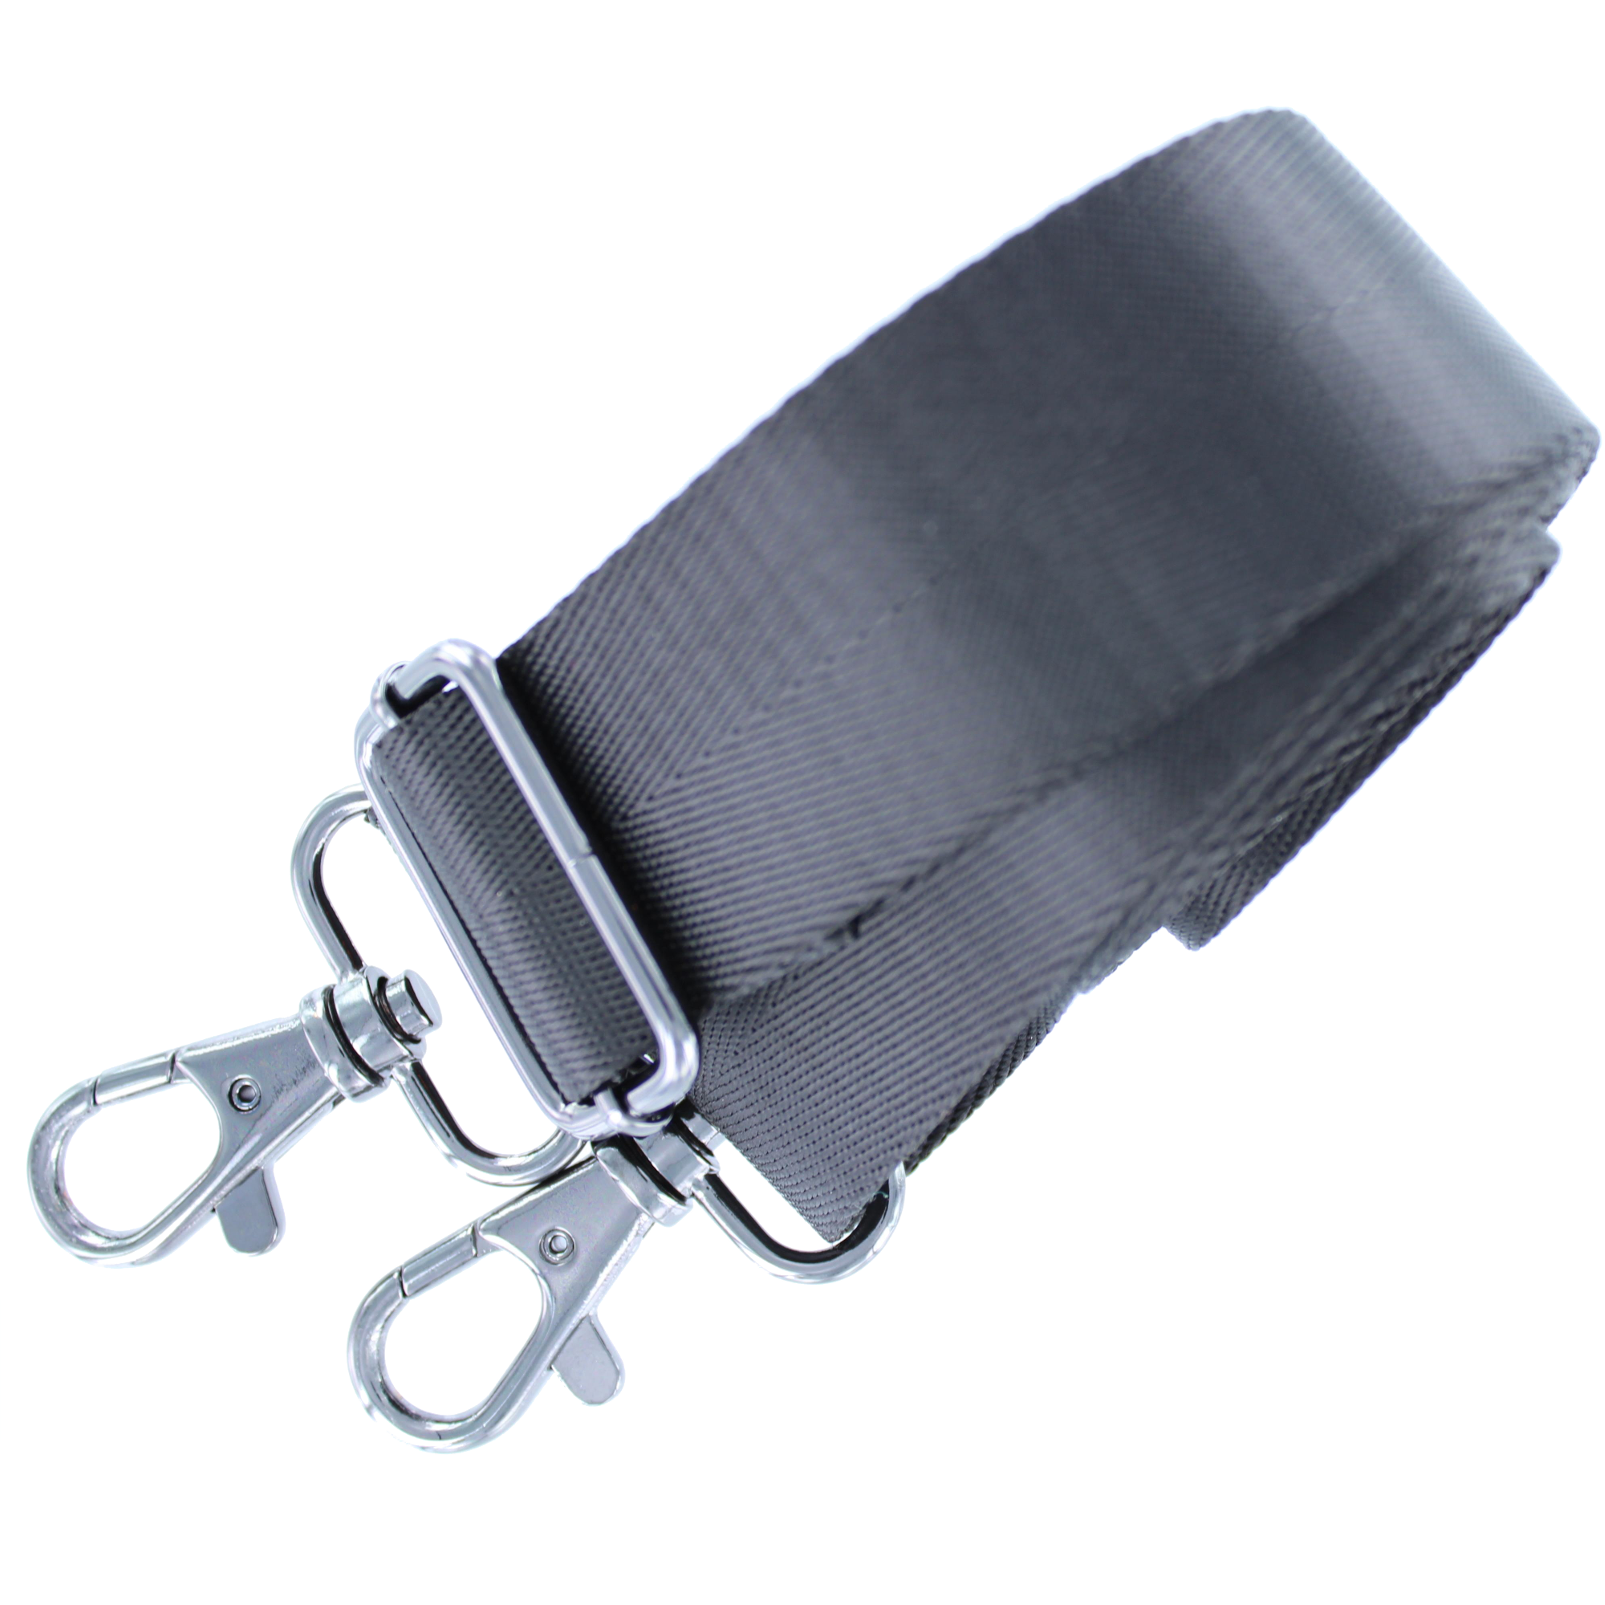 Carrying strap, JBL Xtreme